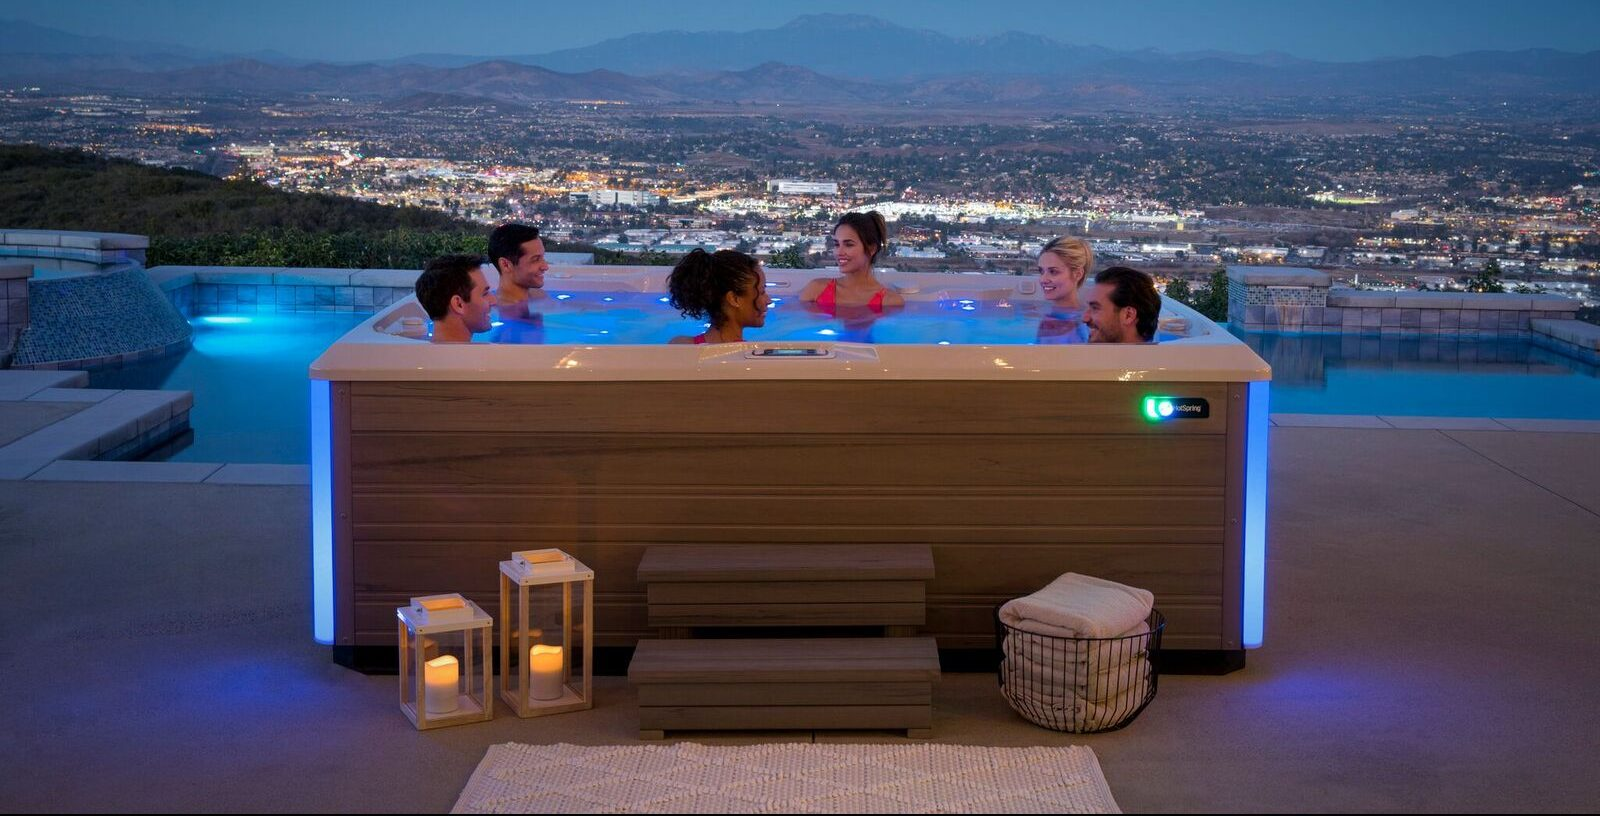 The Top 11 Hot Tub No-Nos